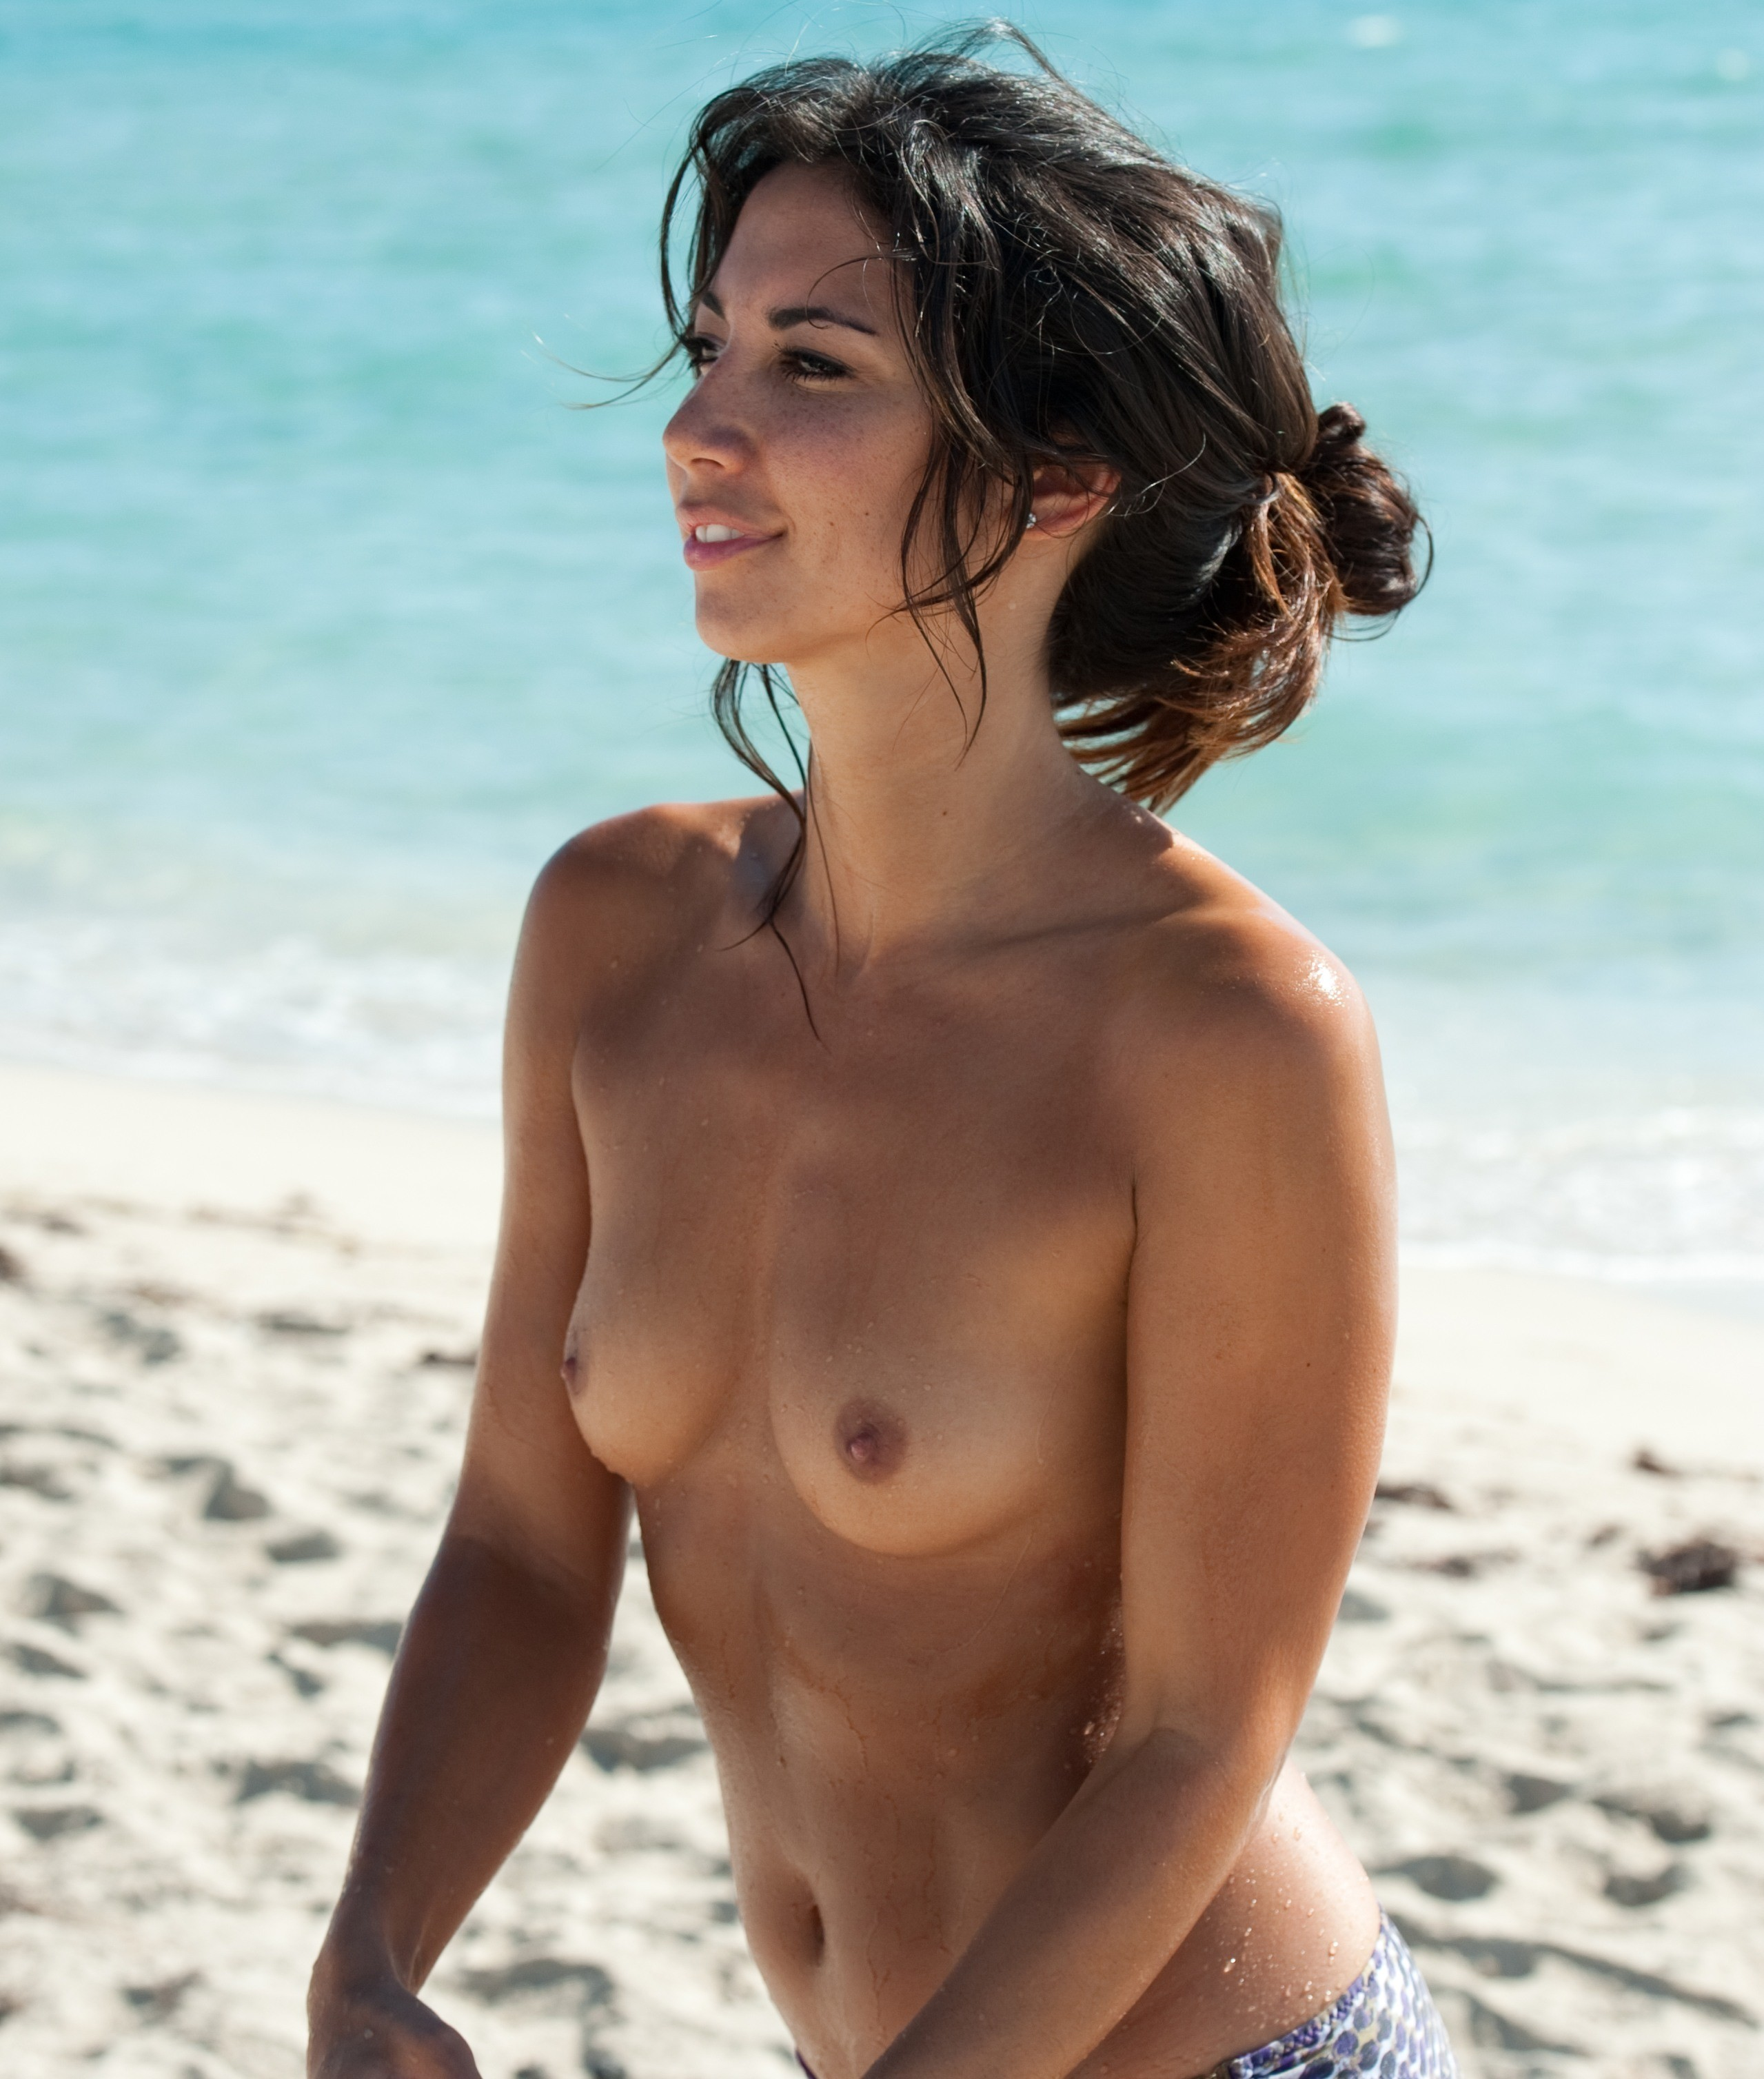 nudists-girls-boobs-beach-topless-mix-vol7-63